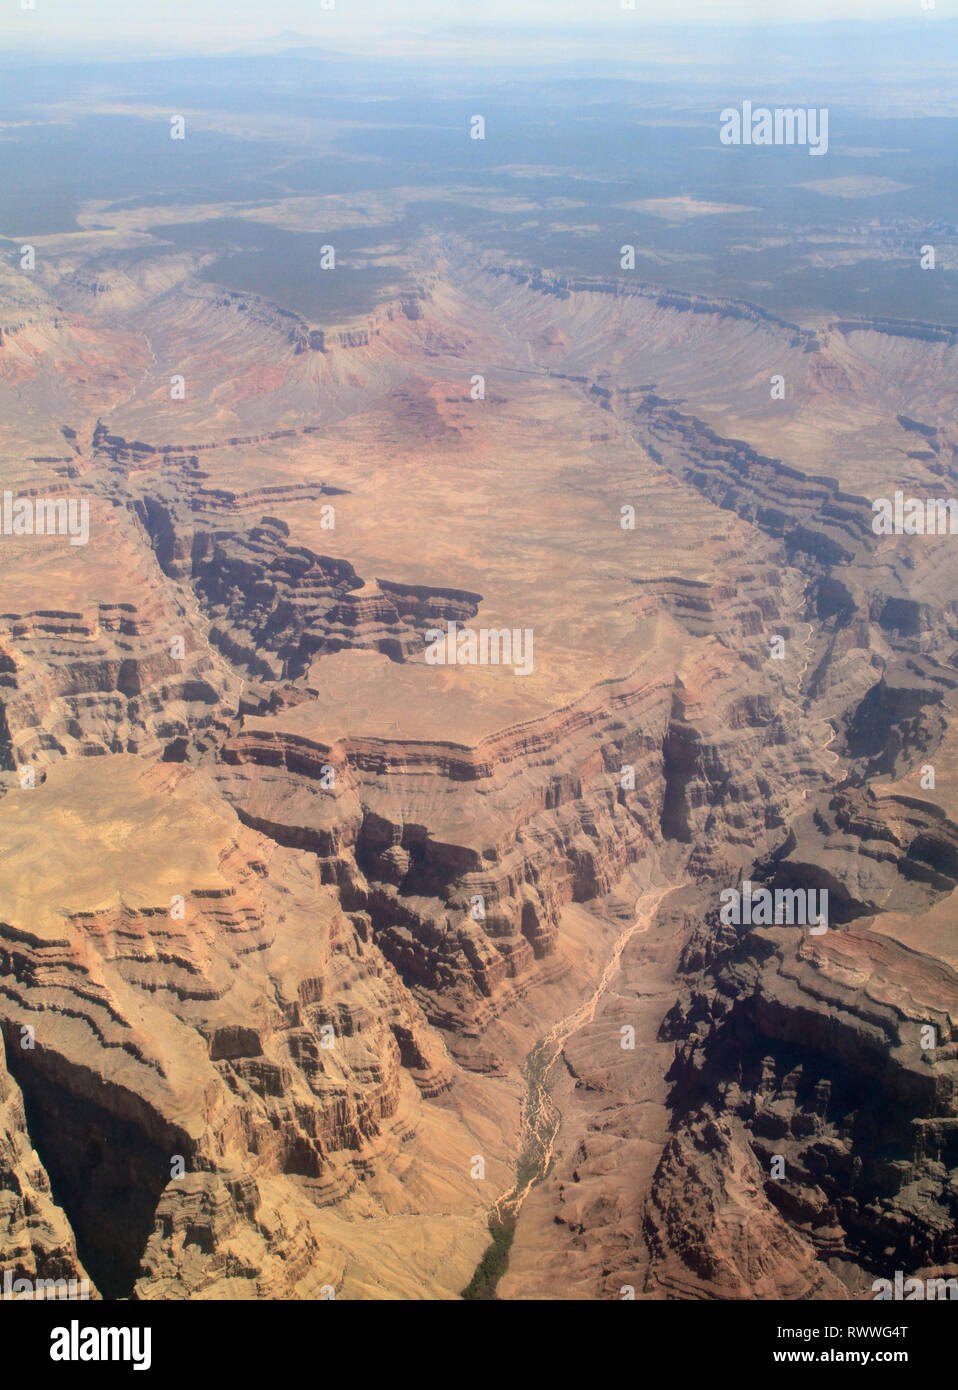 Helicopter view over the Grand Canyon - Stock Image